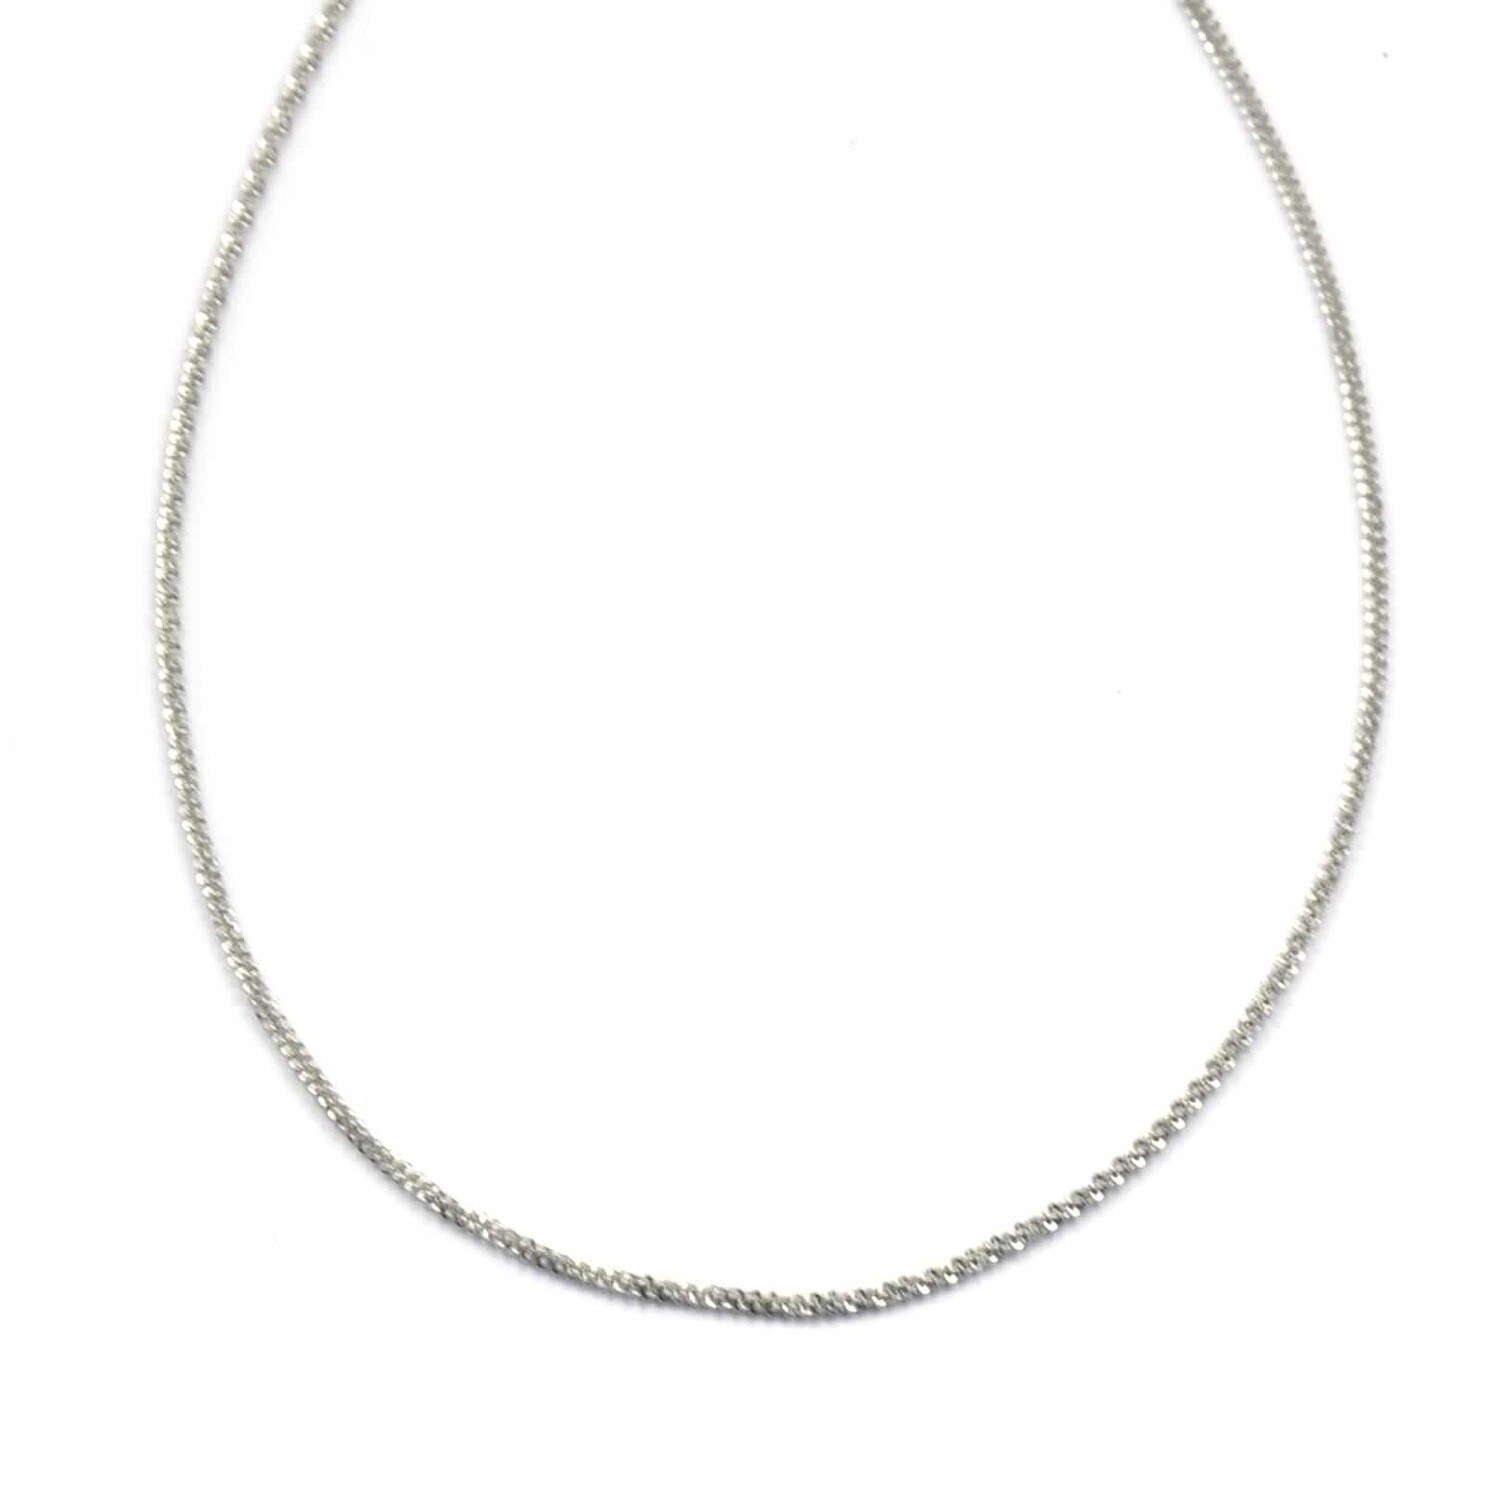 ZAG Ketting Sparkling Chain   Zilver